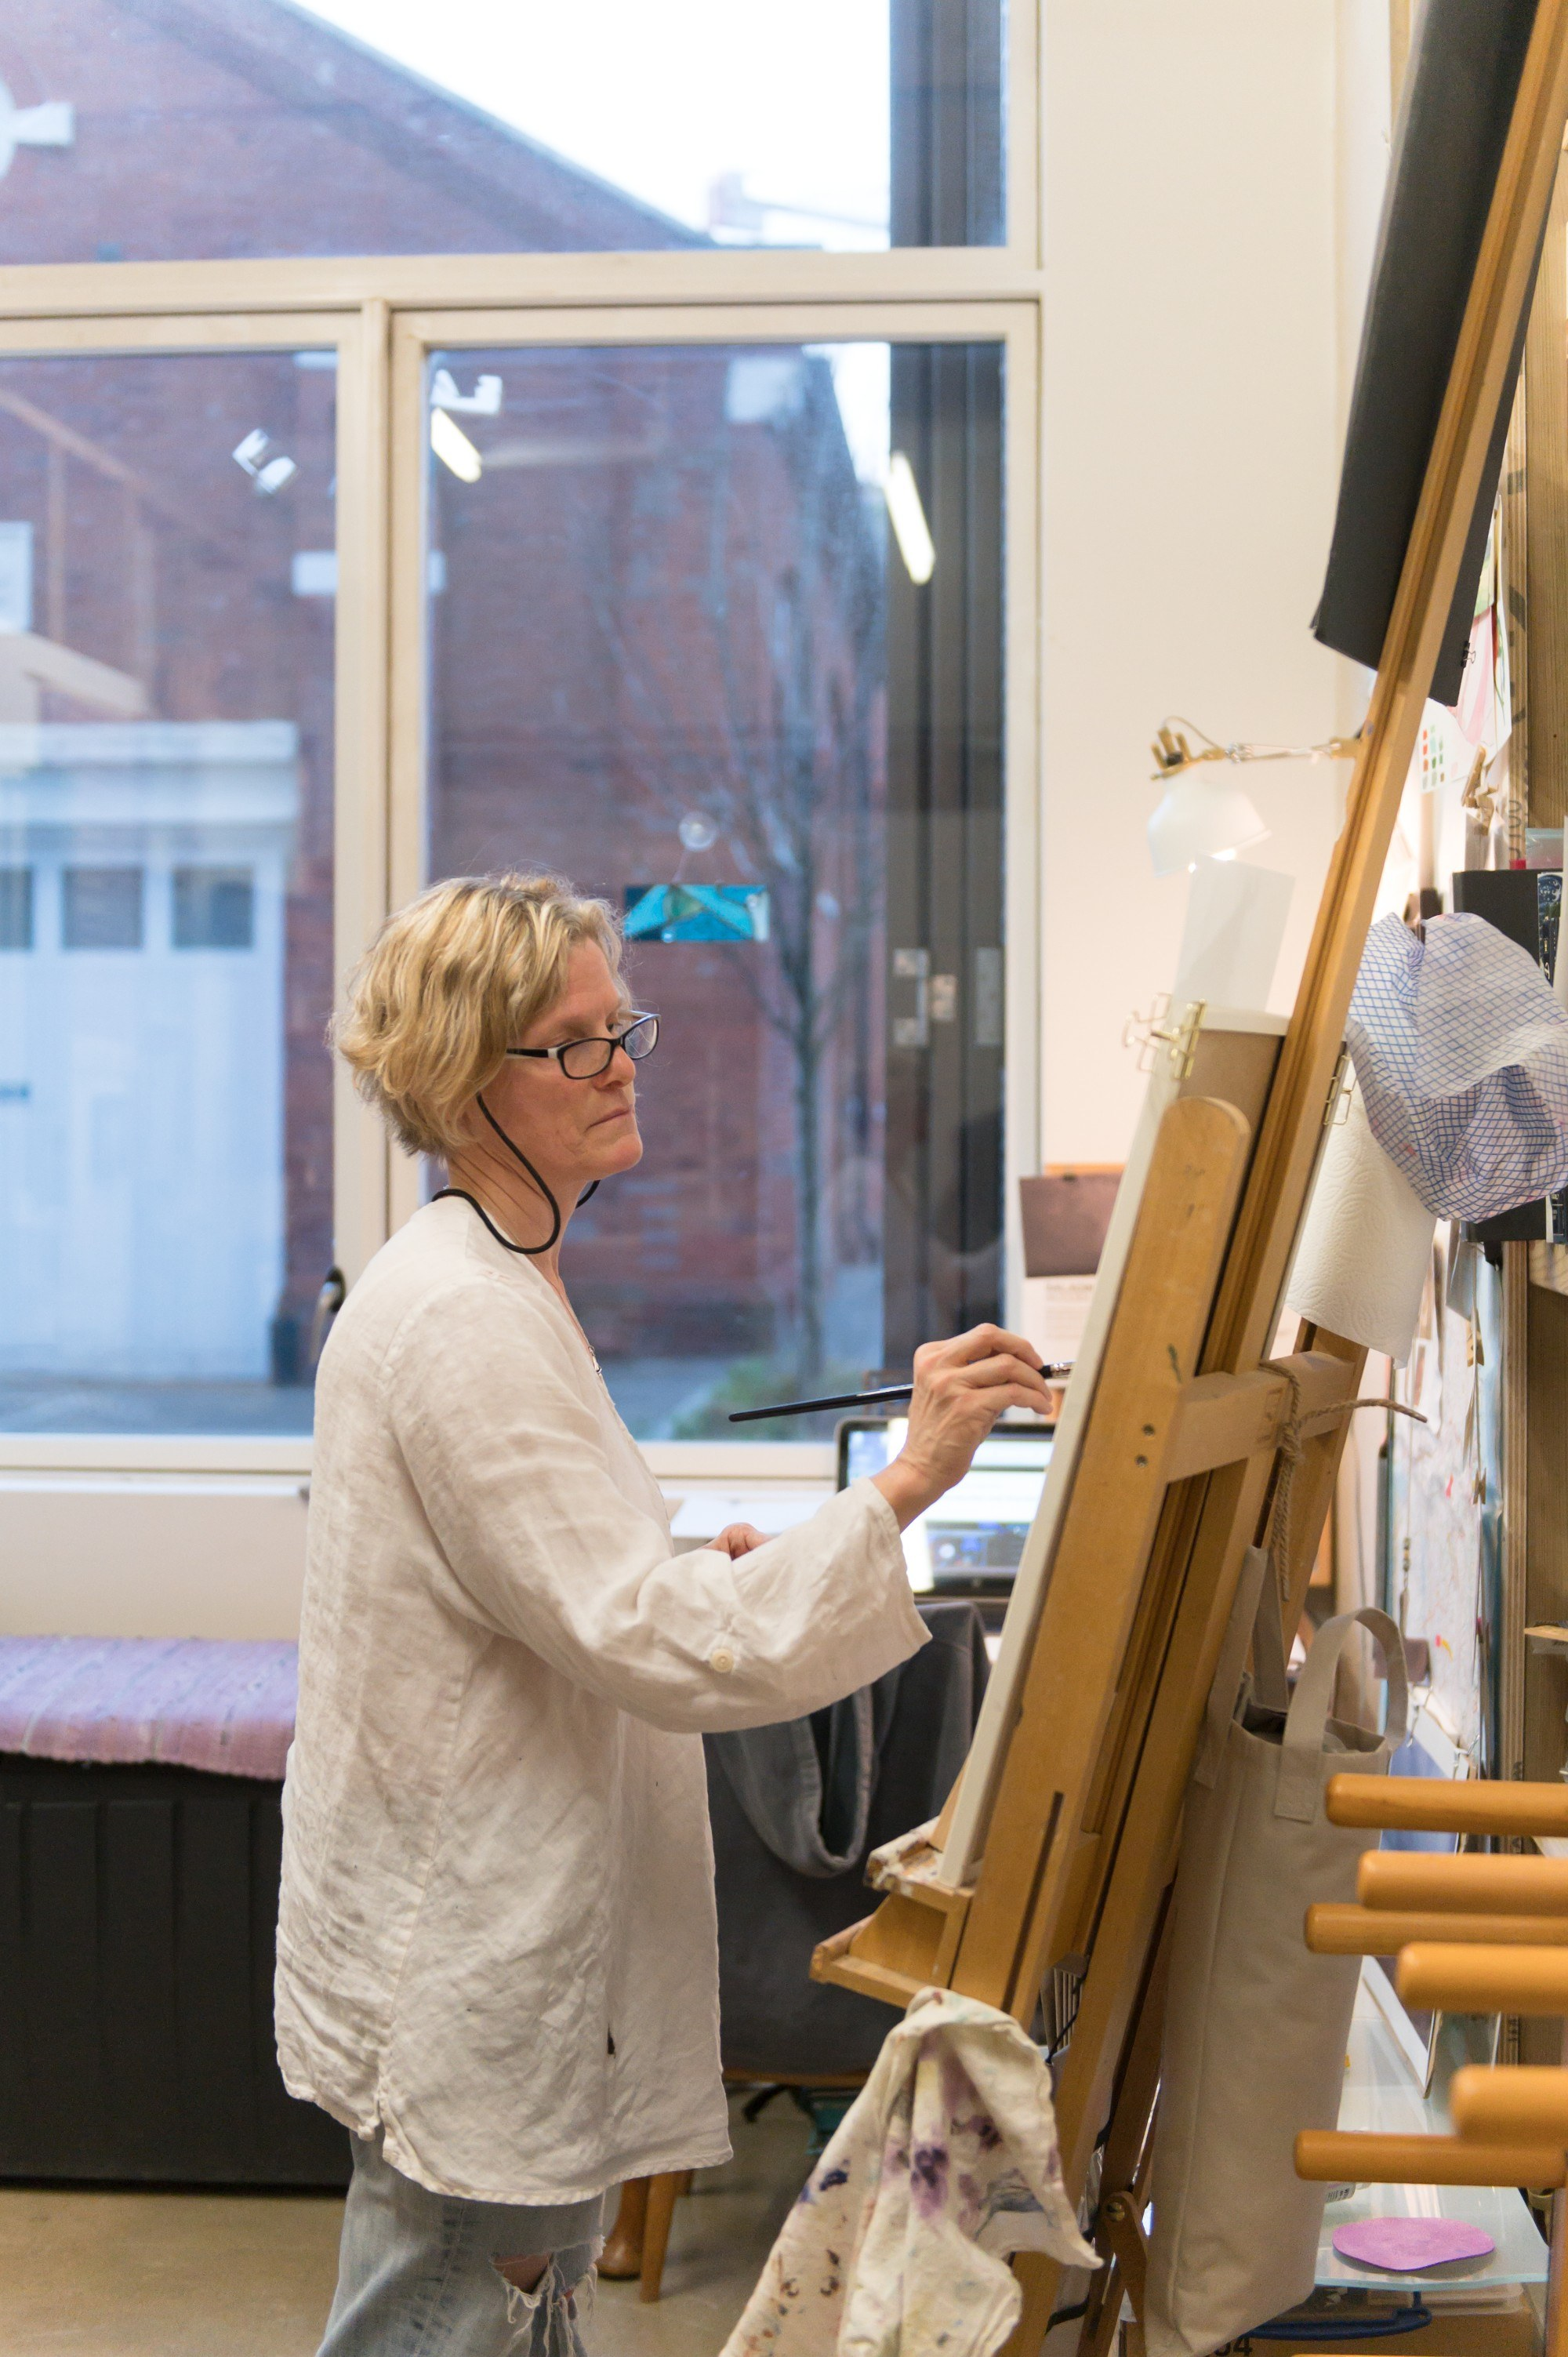 Artist painting on an easel